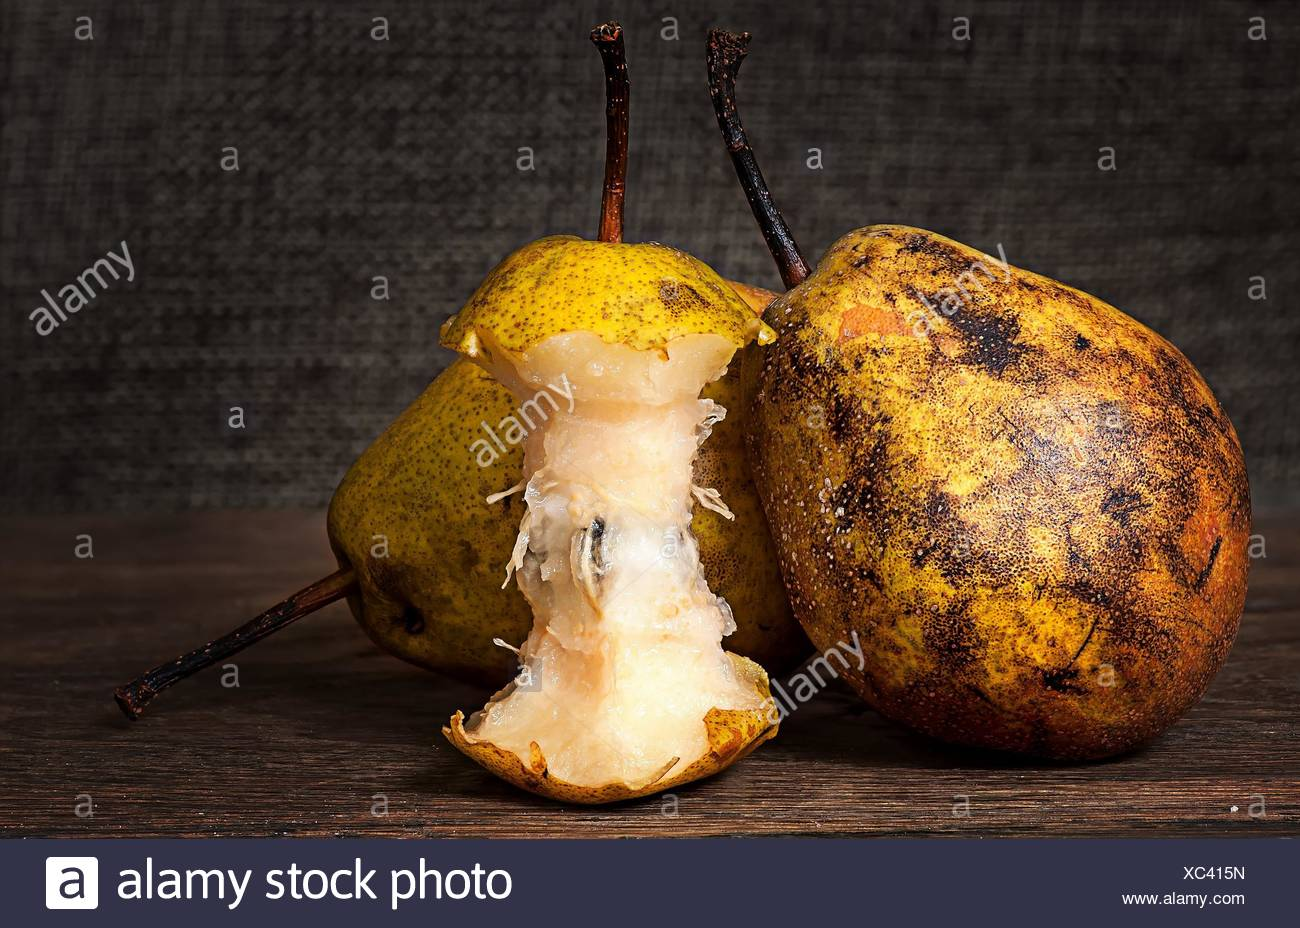 Two pears and stub standing on wooden table background sacking. - Stock Image